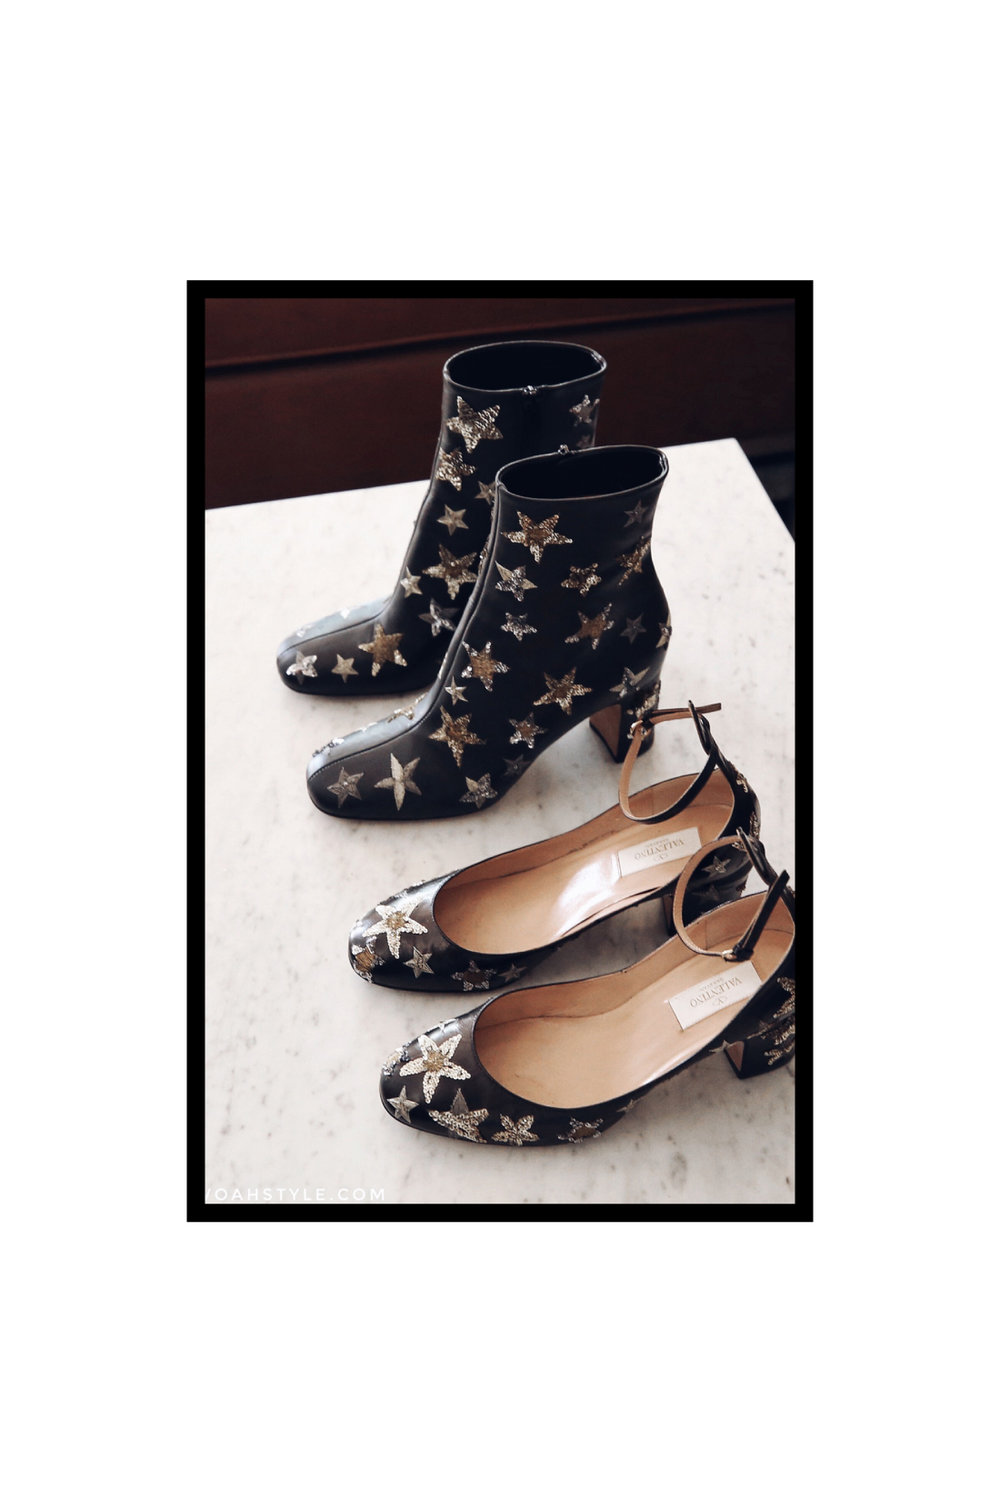 valentino-star-studded-boots-and-tango-shoes.jpg